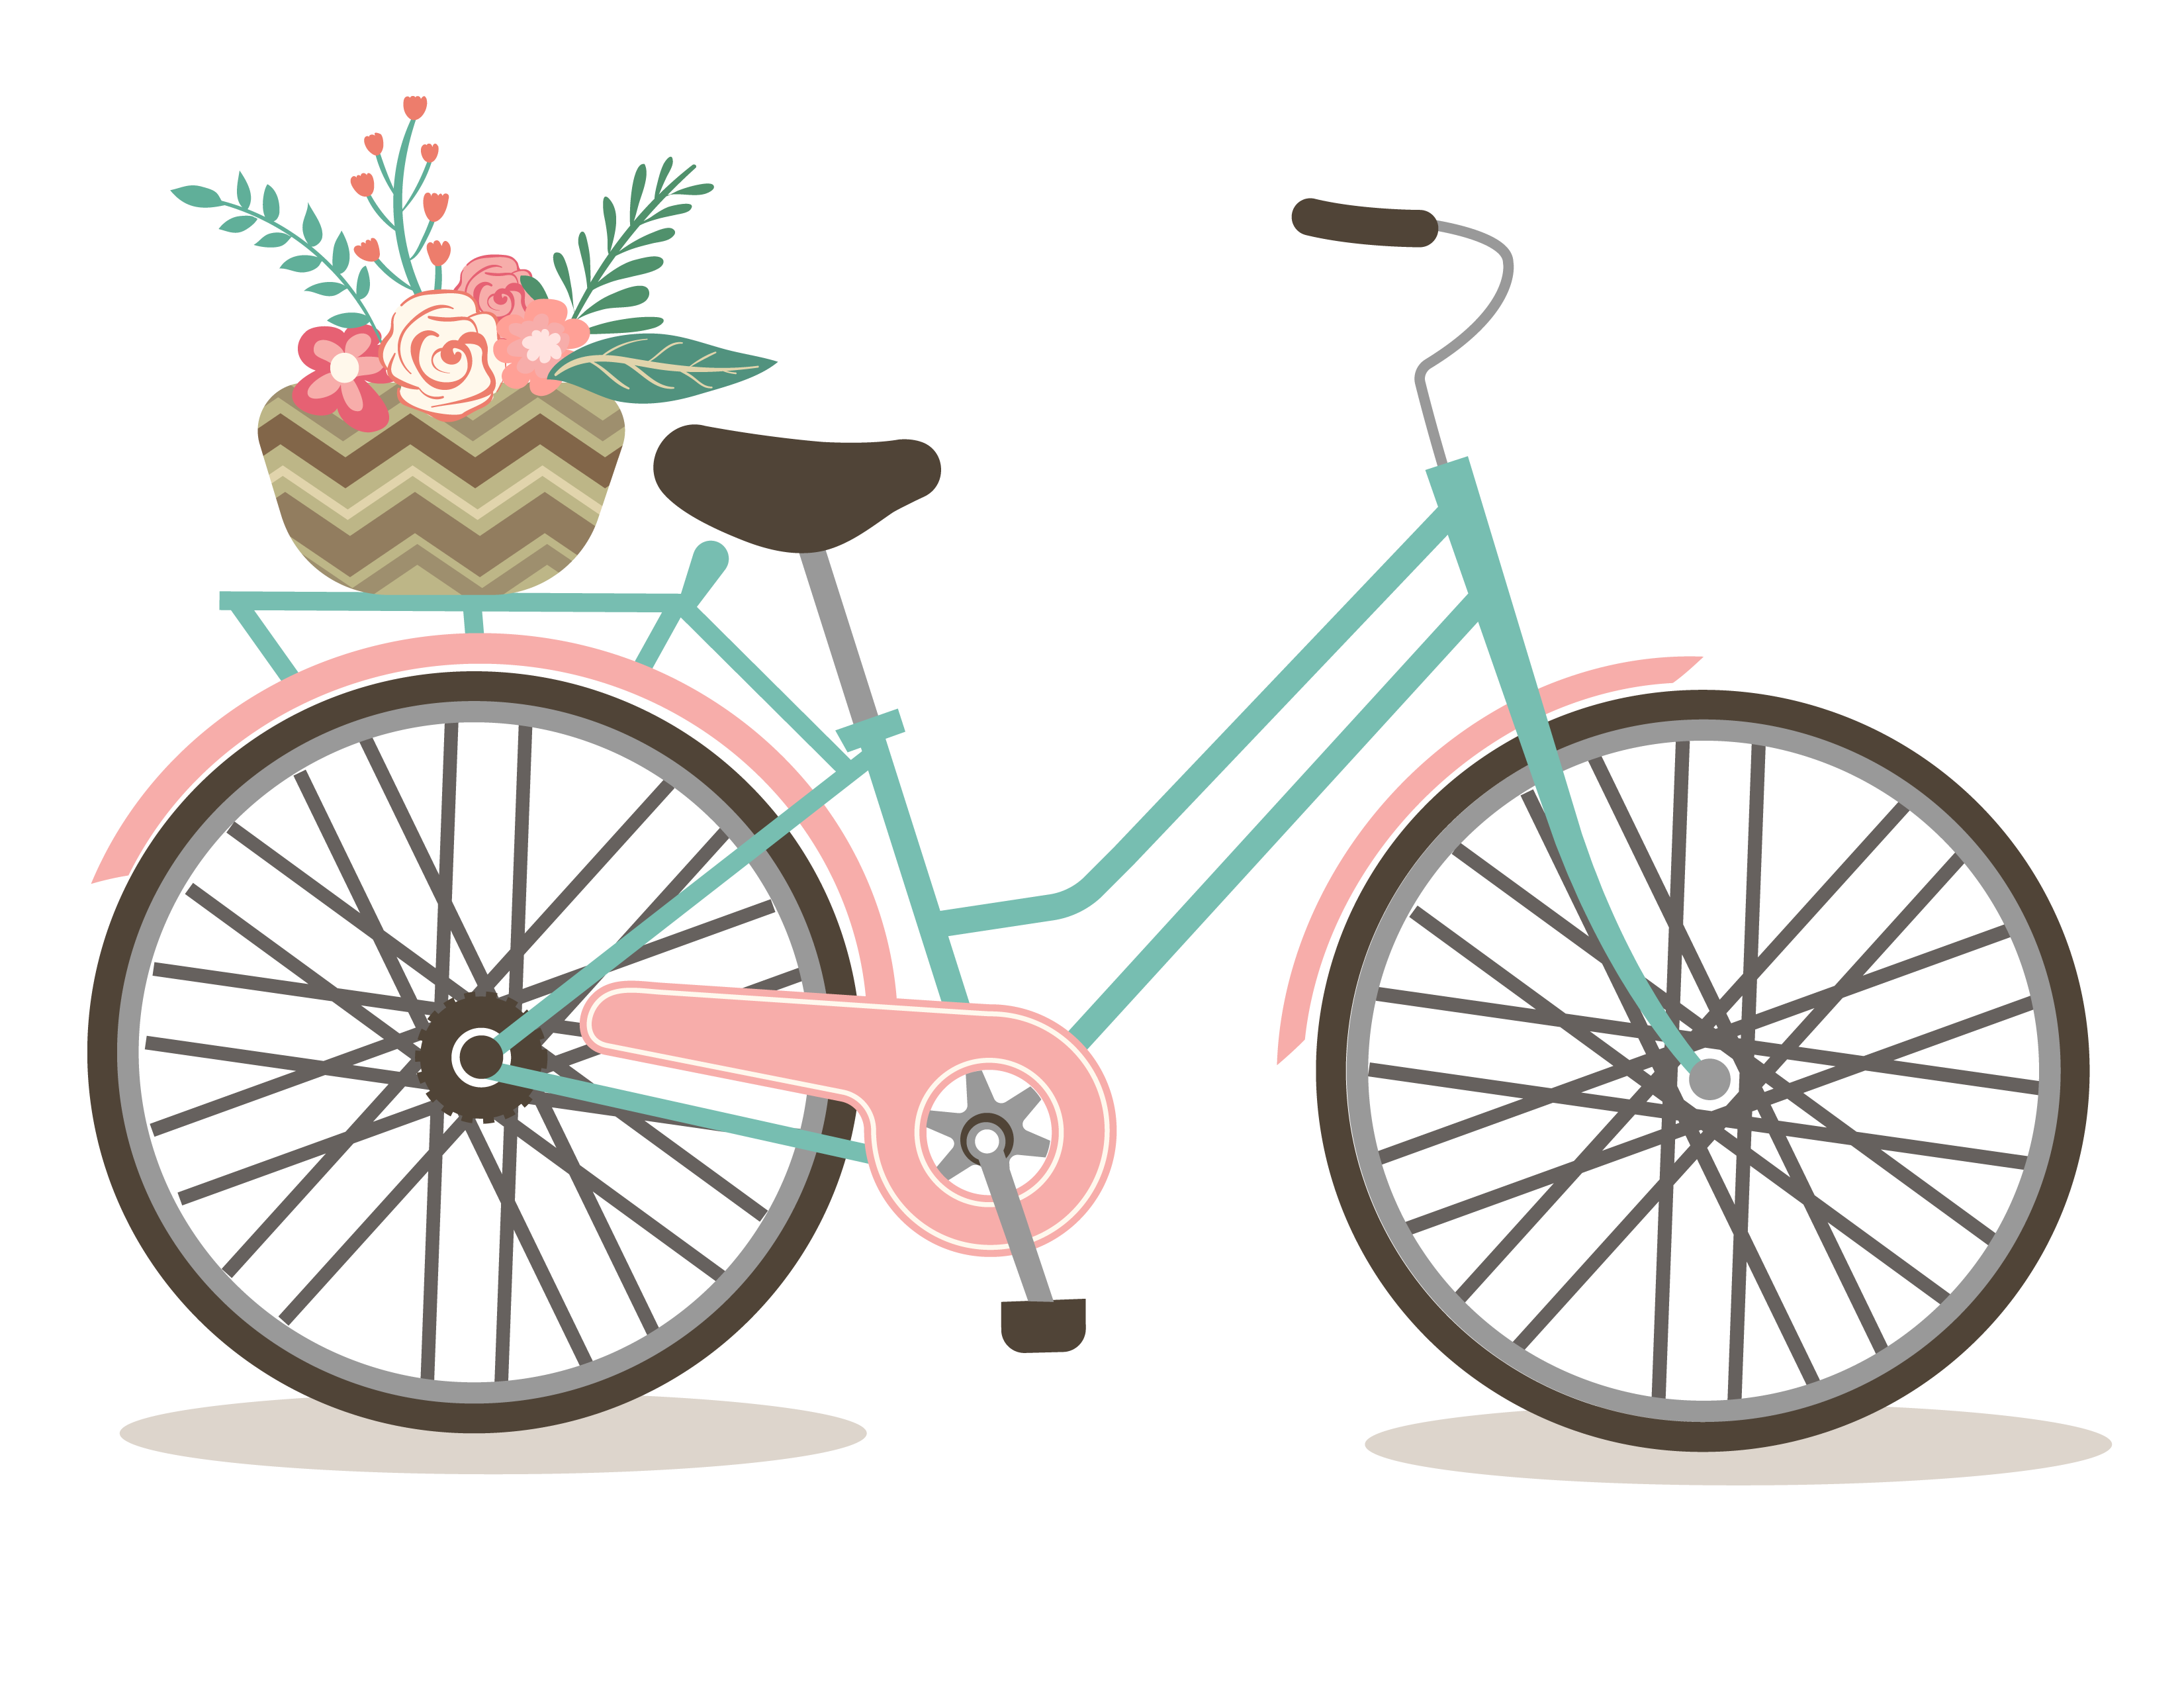 Bycicle clipart svg freeuse stock Free Bicycle Clip Art, Download Free Clip Art, Free Clip Art on ... svg freeuse stock